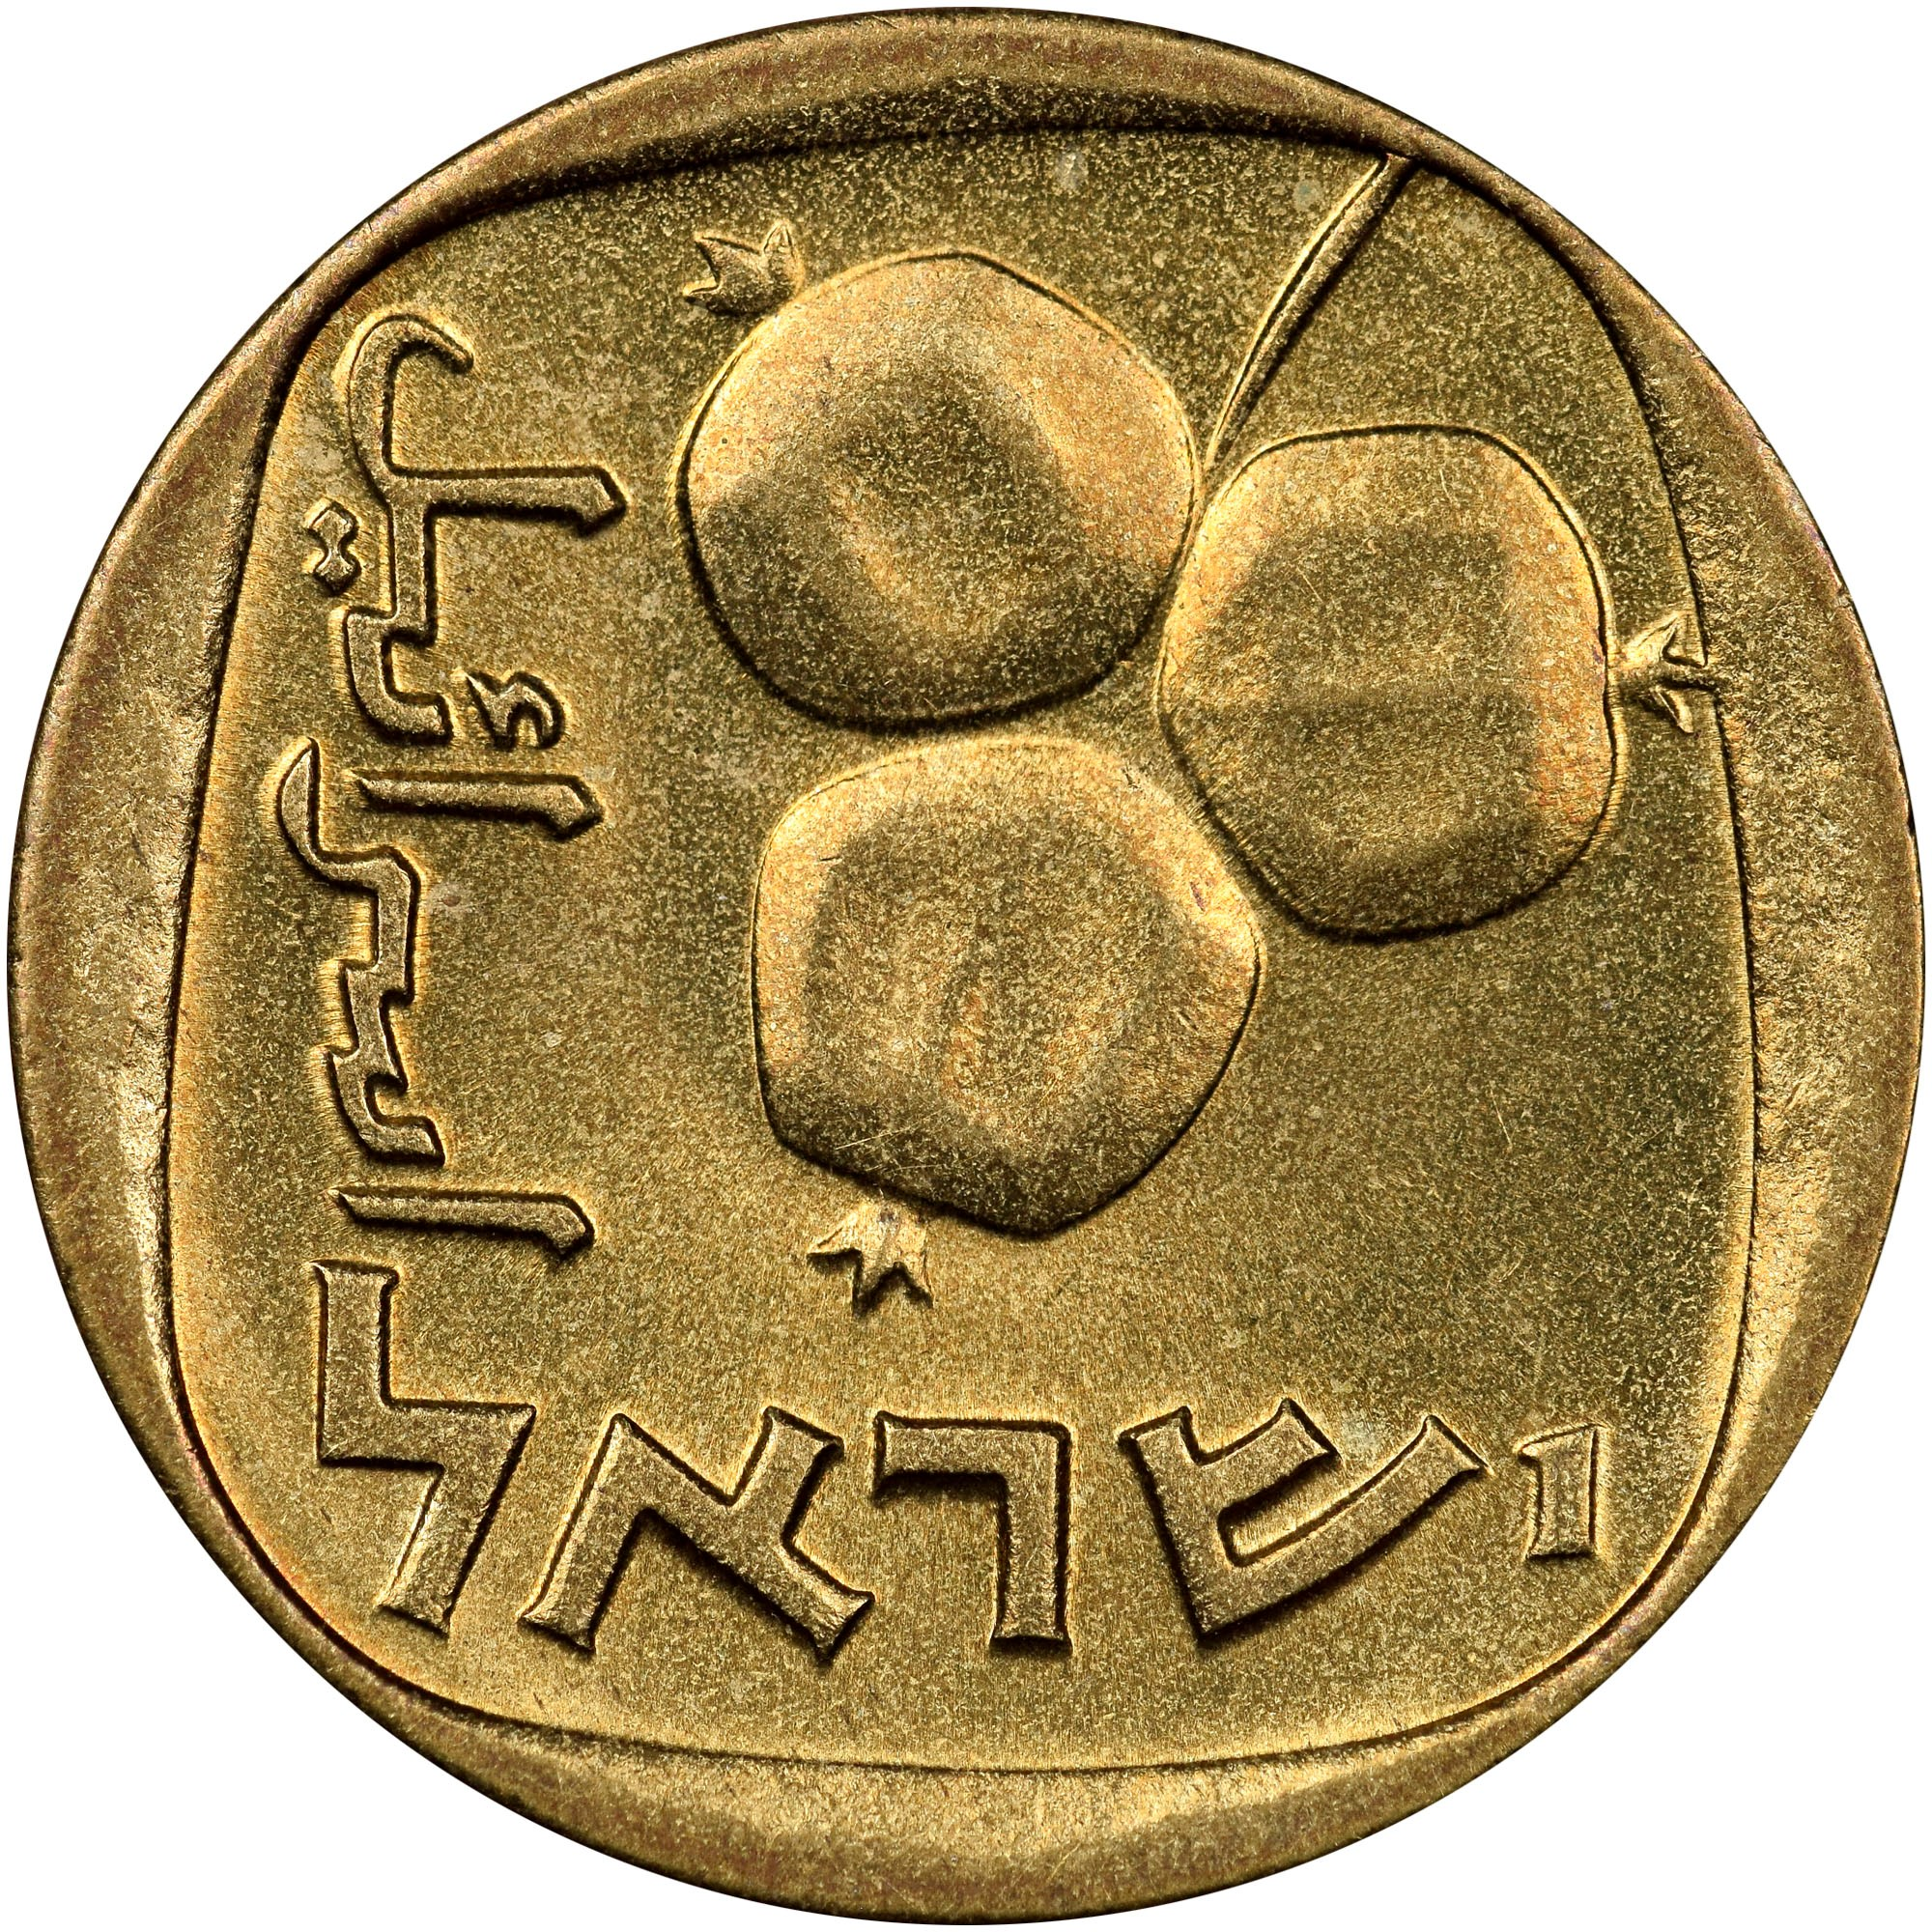 25 Agorot Bronze coin money autentic 1960 circulated Israel 2 coins:10 Agorot